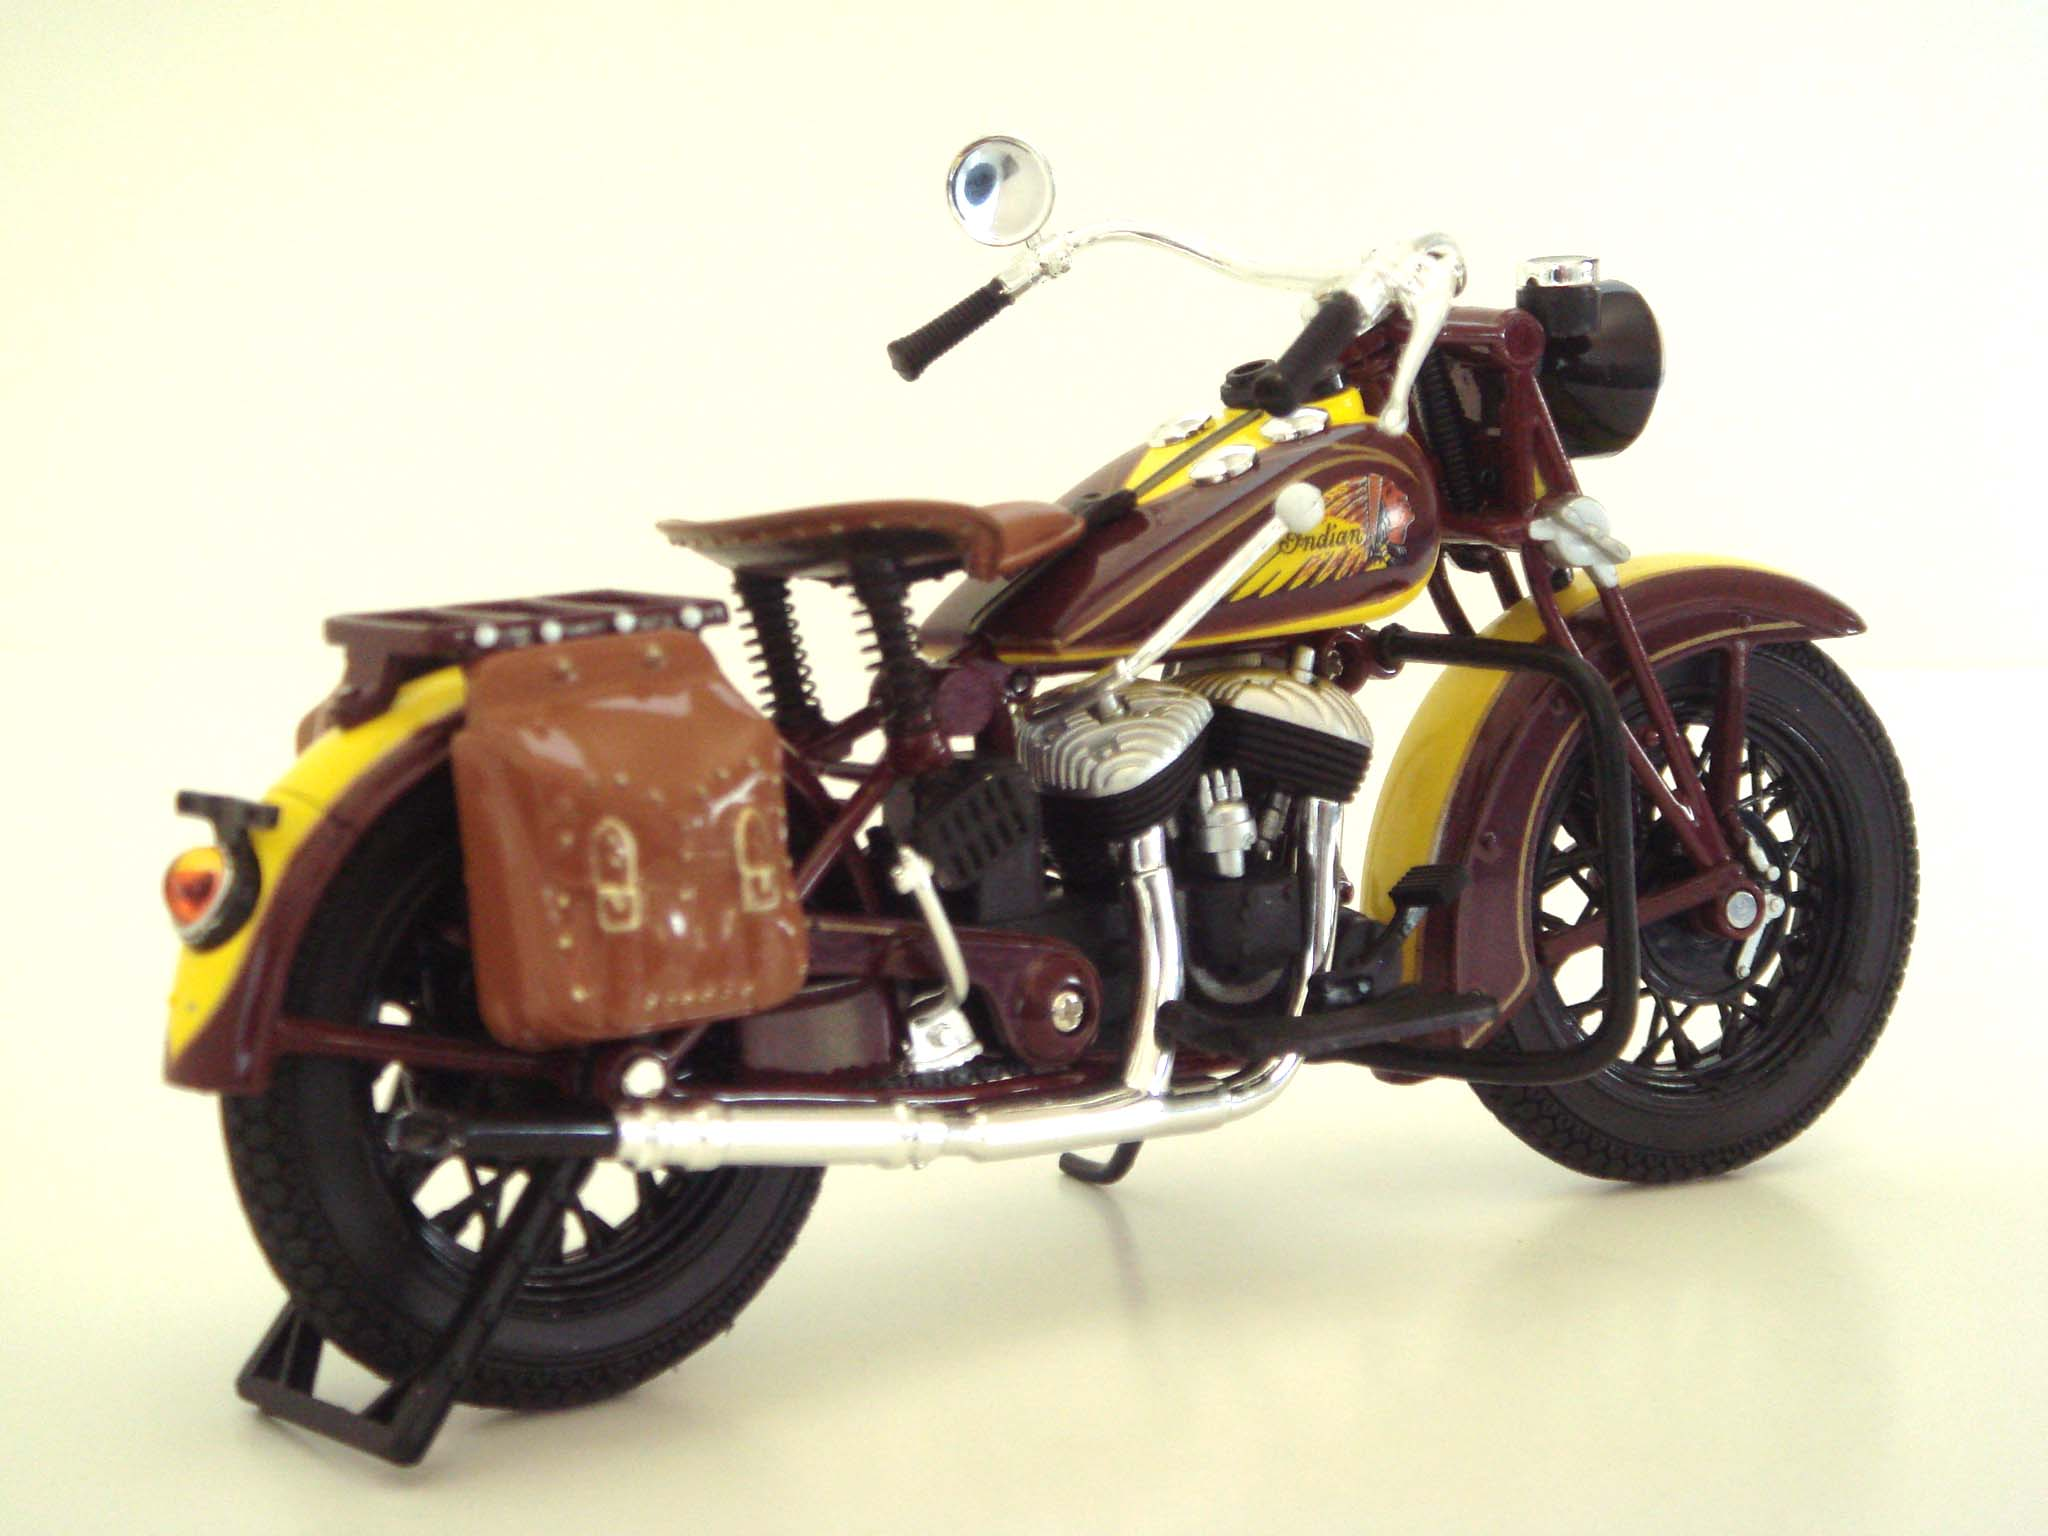 Vintage 1934 Indian Sport Scout Motorcycle Model Free